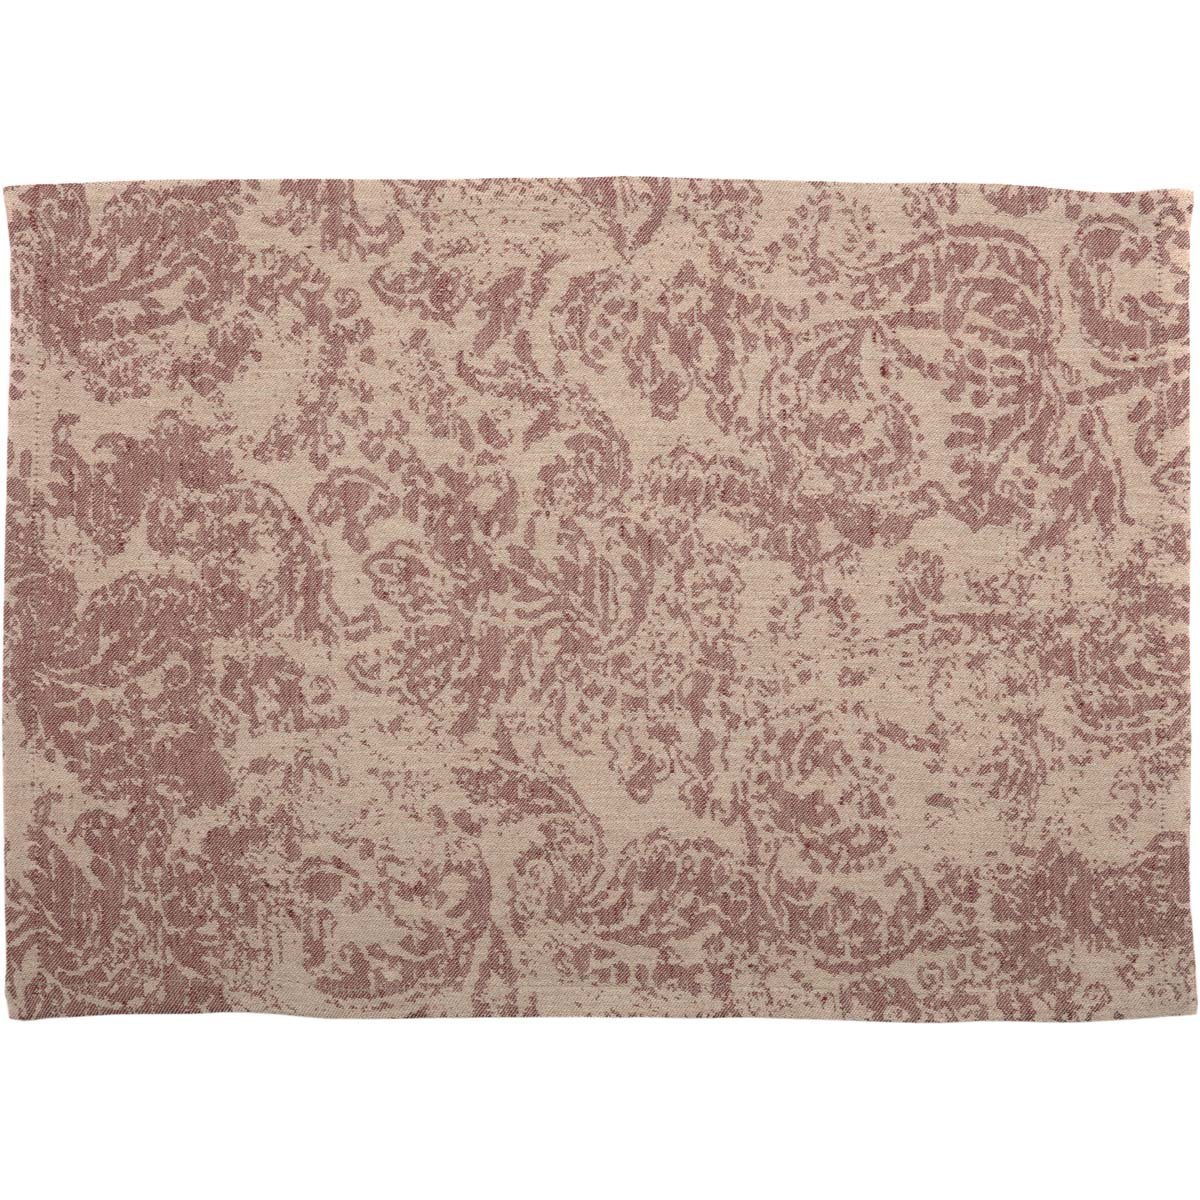 Rebecca Crimson Placemat Set of 6 12x18